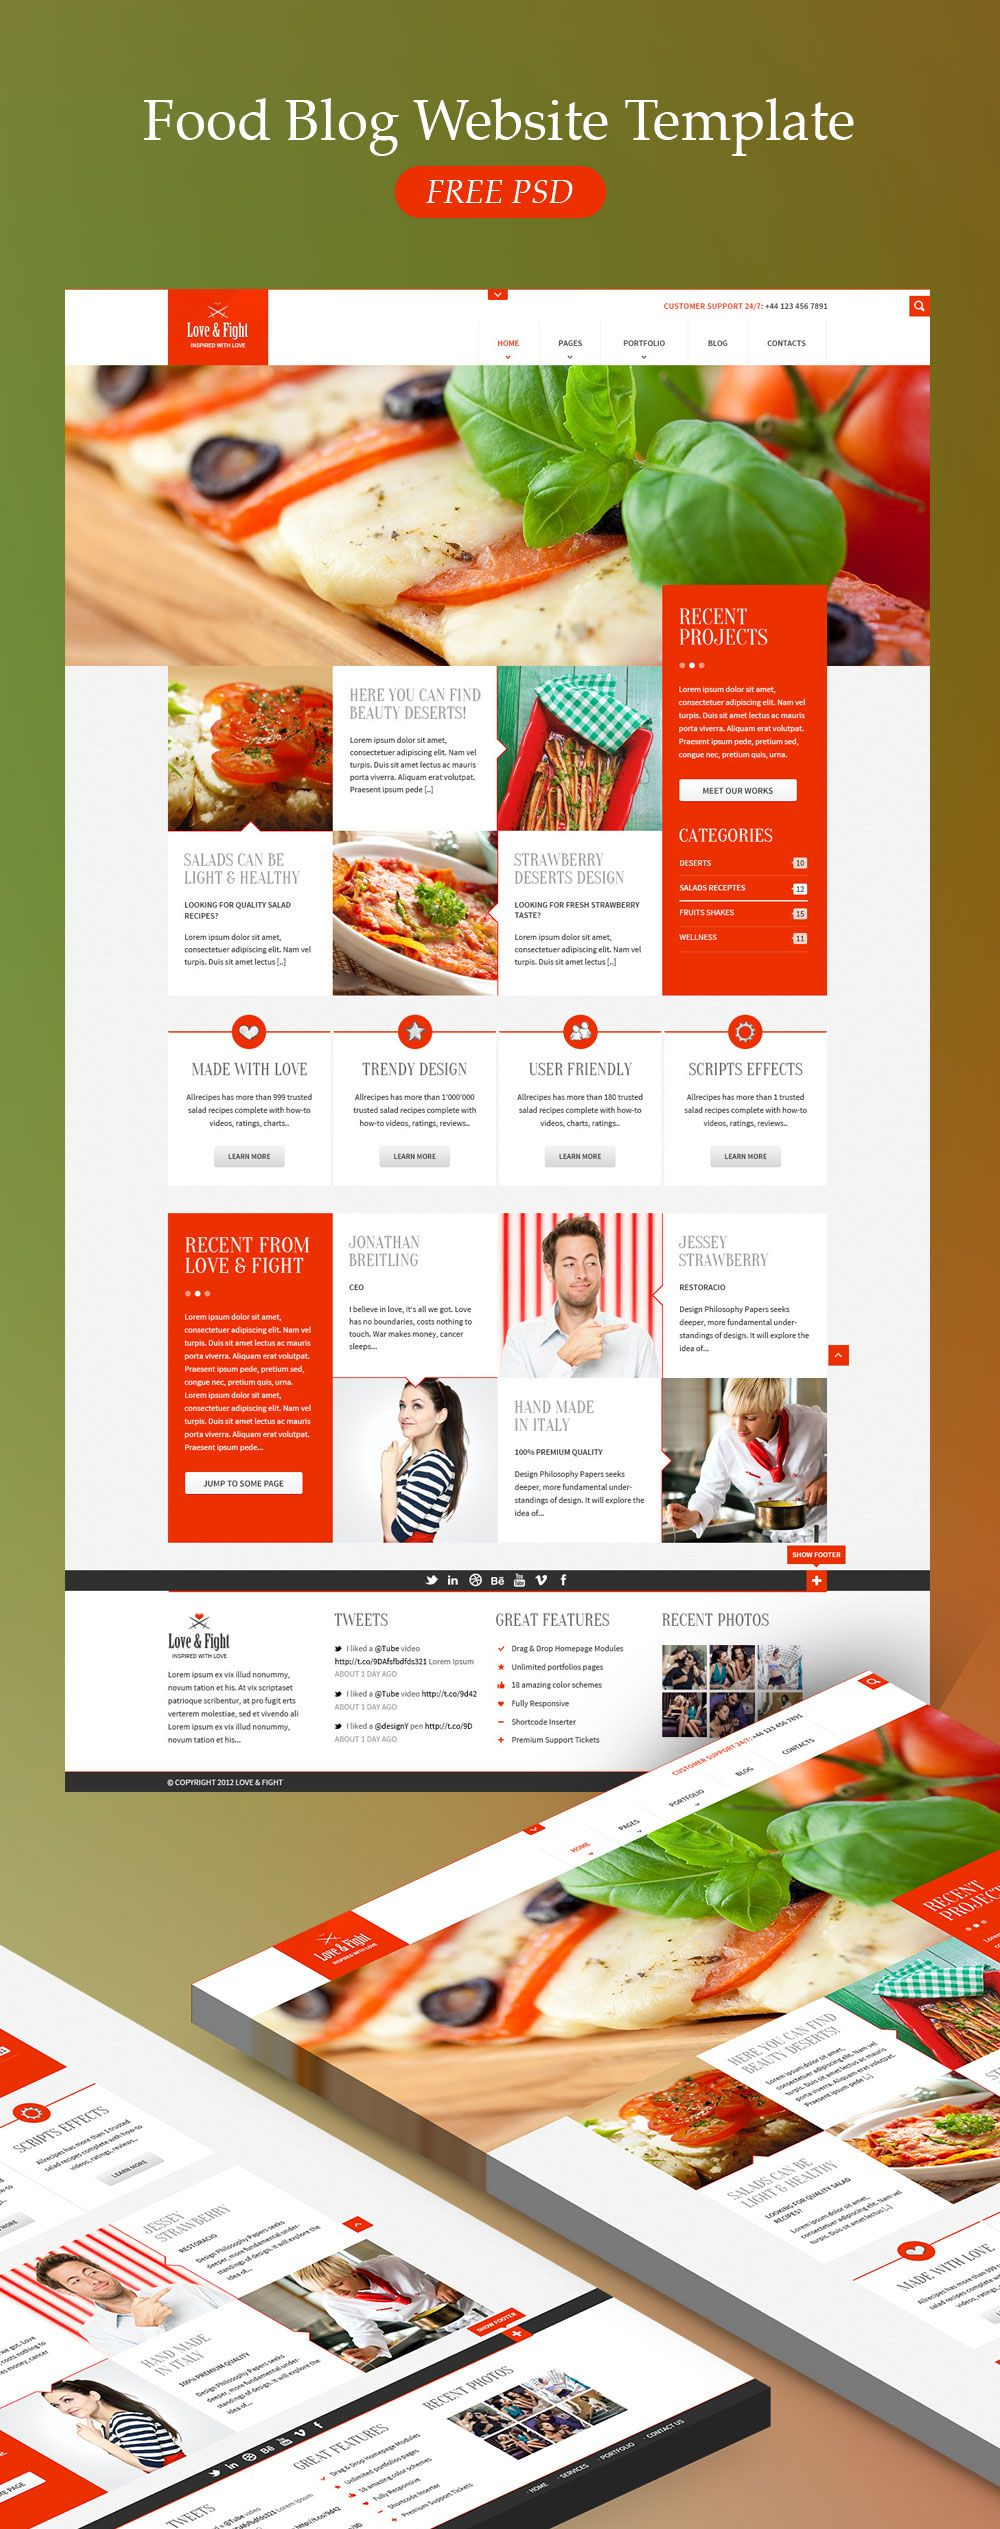 Pdownload food blog website template free psd this psd template is pdownload food blog website template free psd this psd template is exclusively forumfinder Gallery